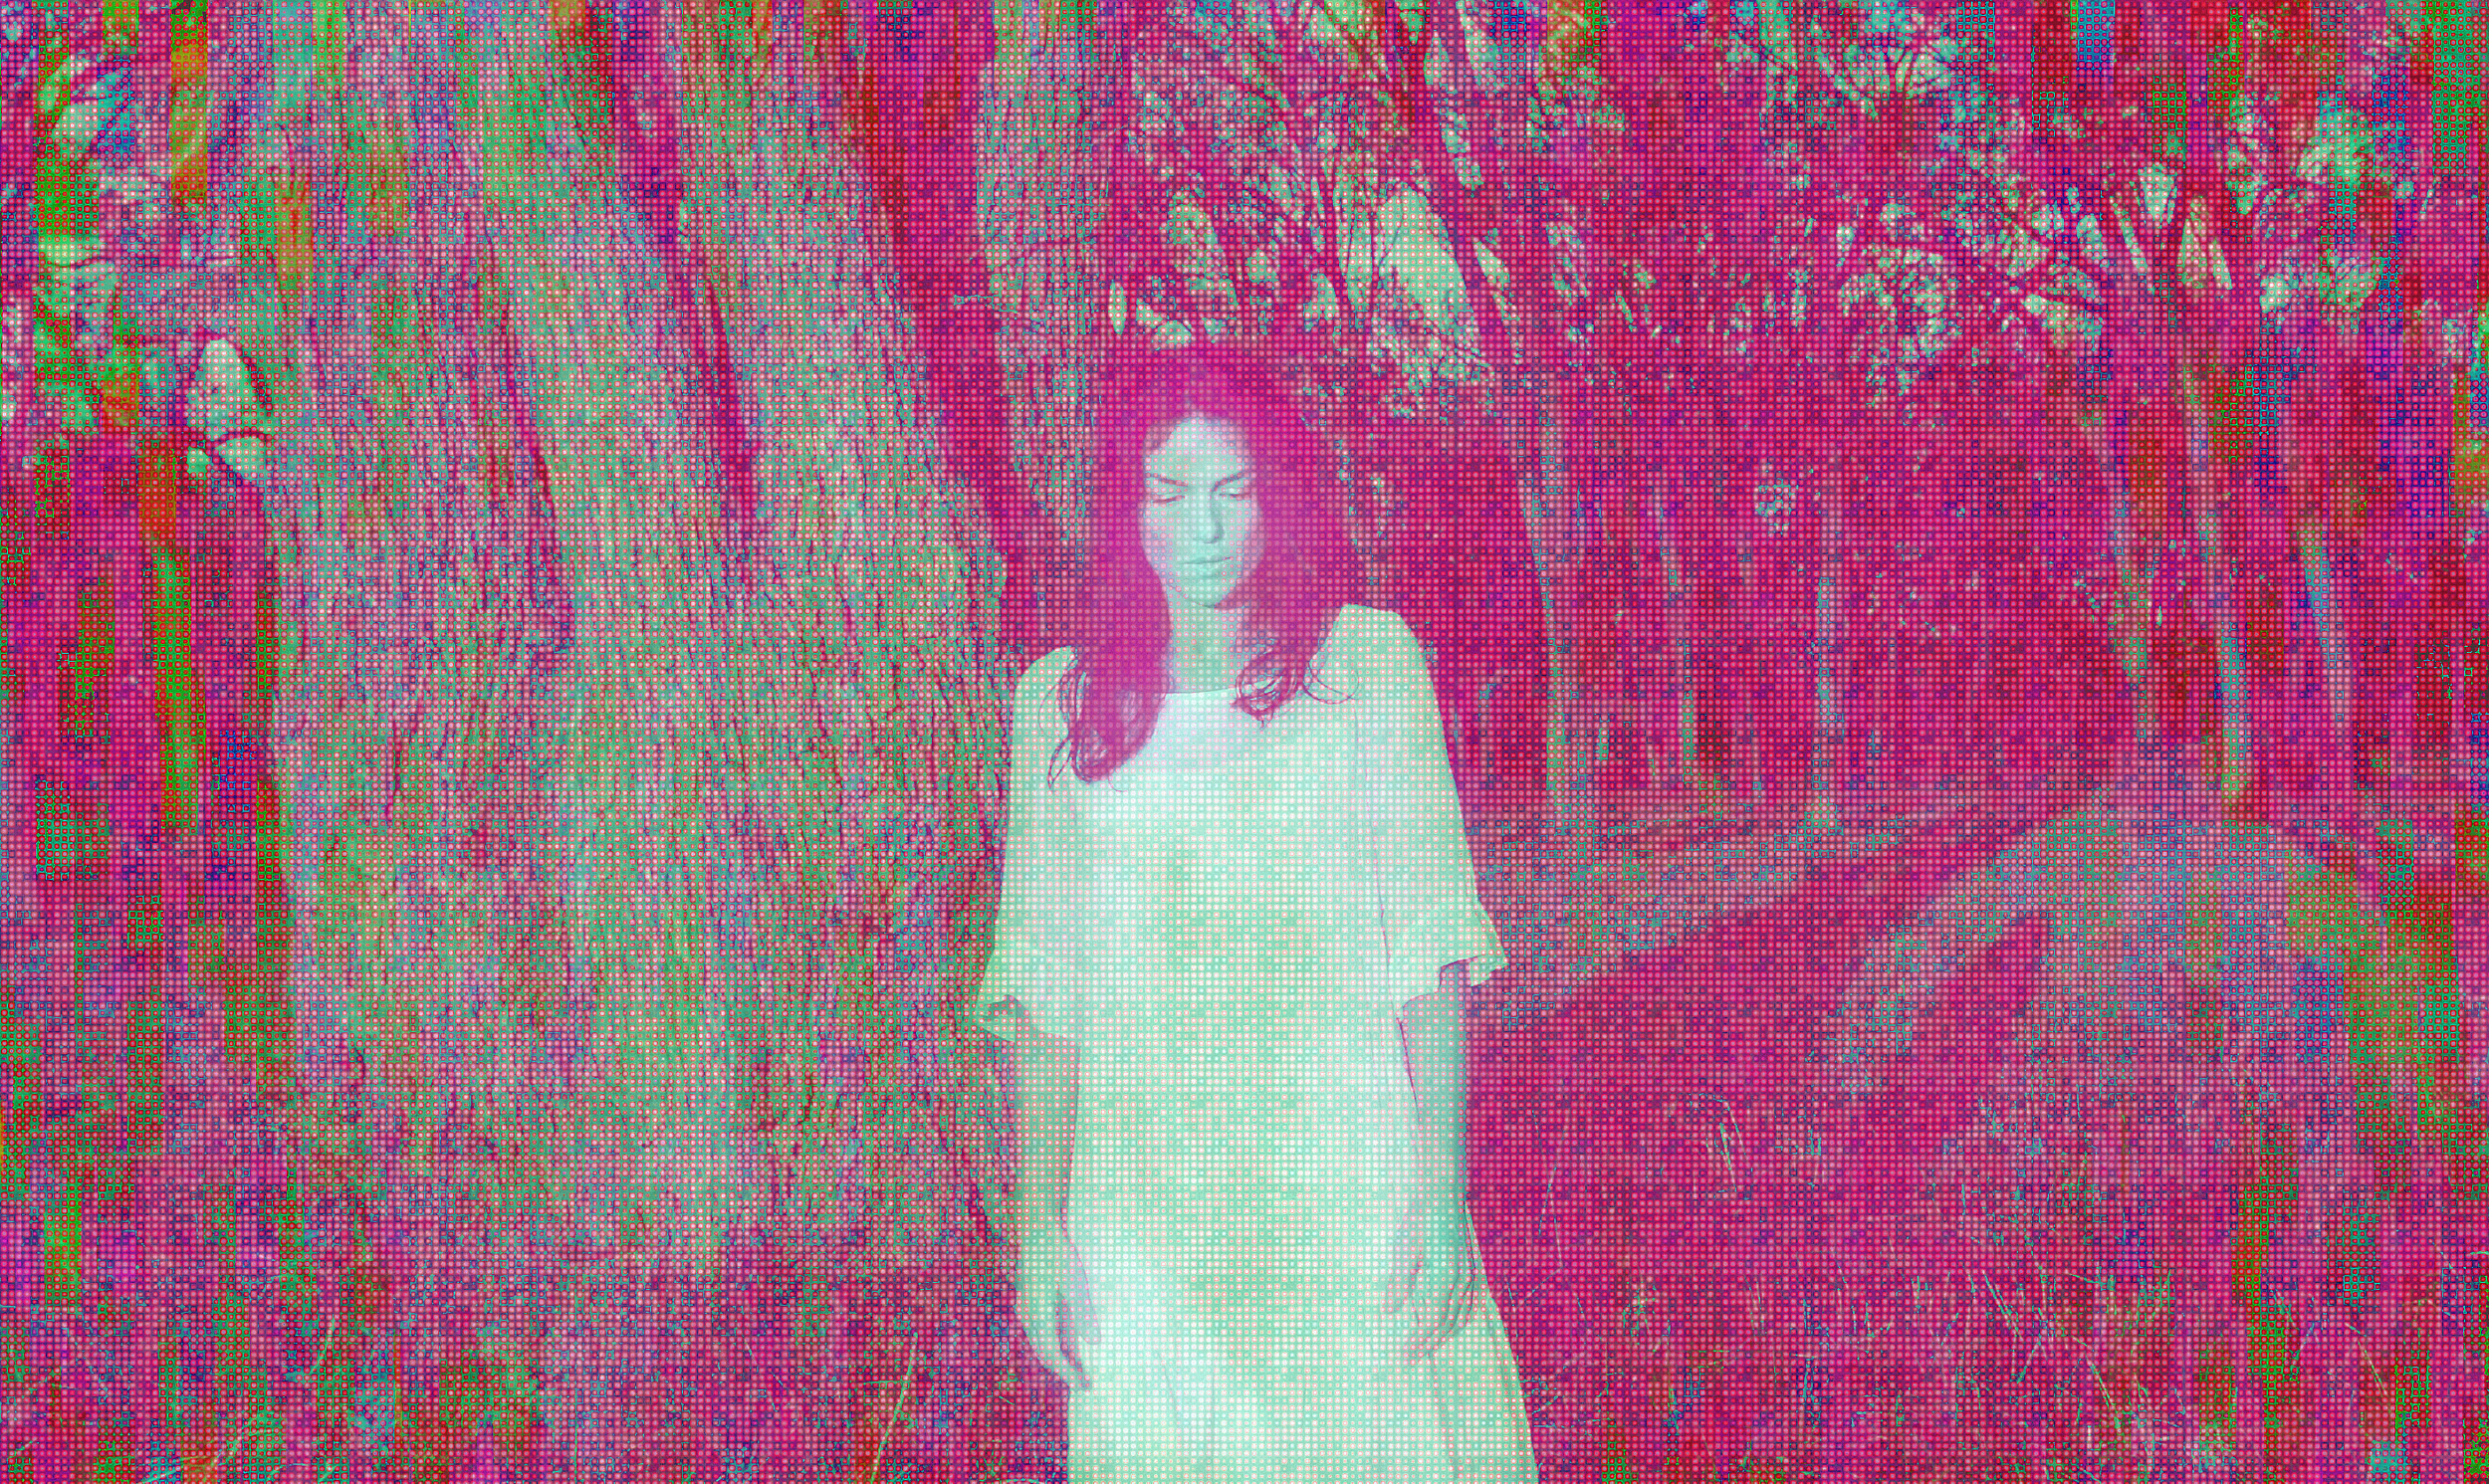 The Magician (Pink Version)2015  Limited Edition Pigmented Archival Print  22 x 36.8 in  1/22  printed by Red River, OKC USA